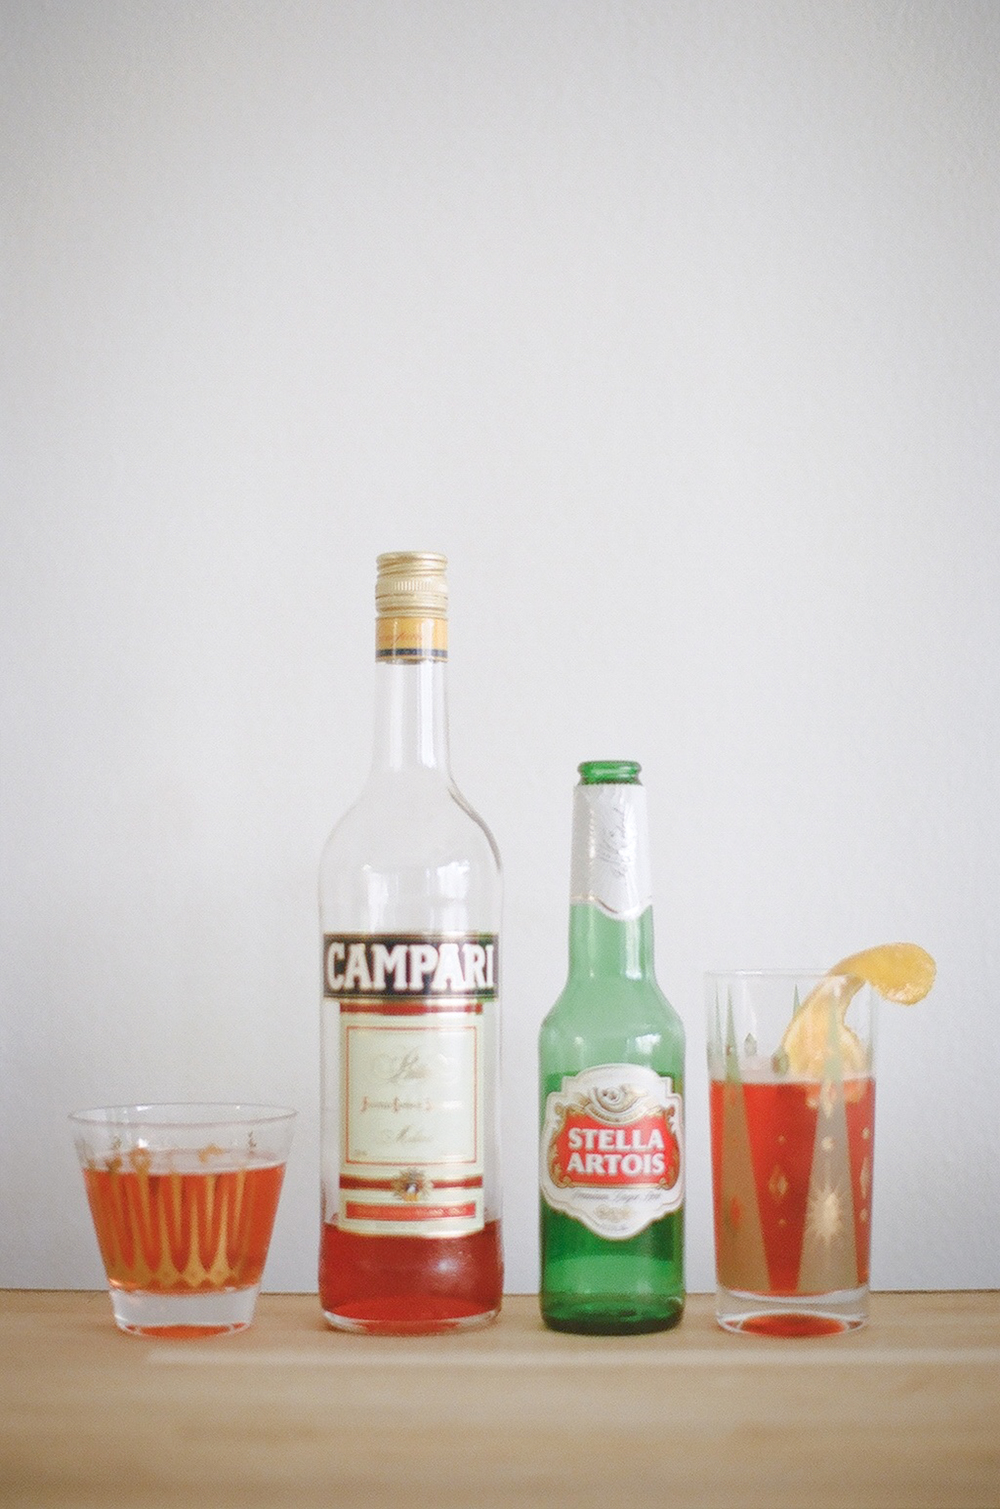 Campari & Stella / gingerandbirch.com / lily glass photography